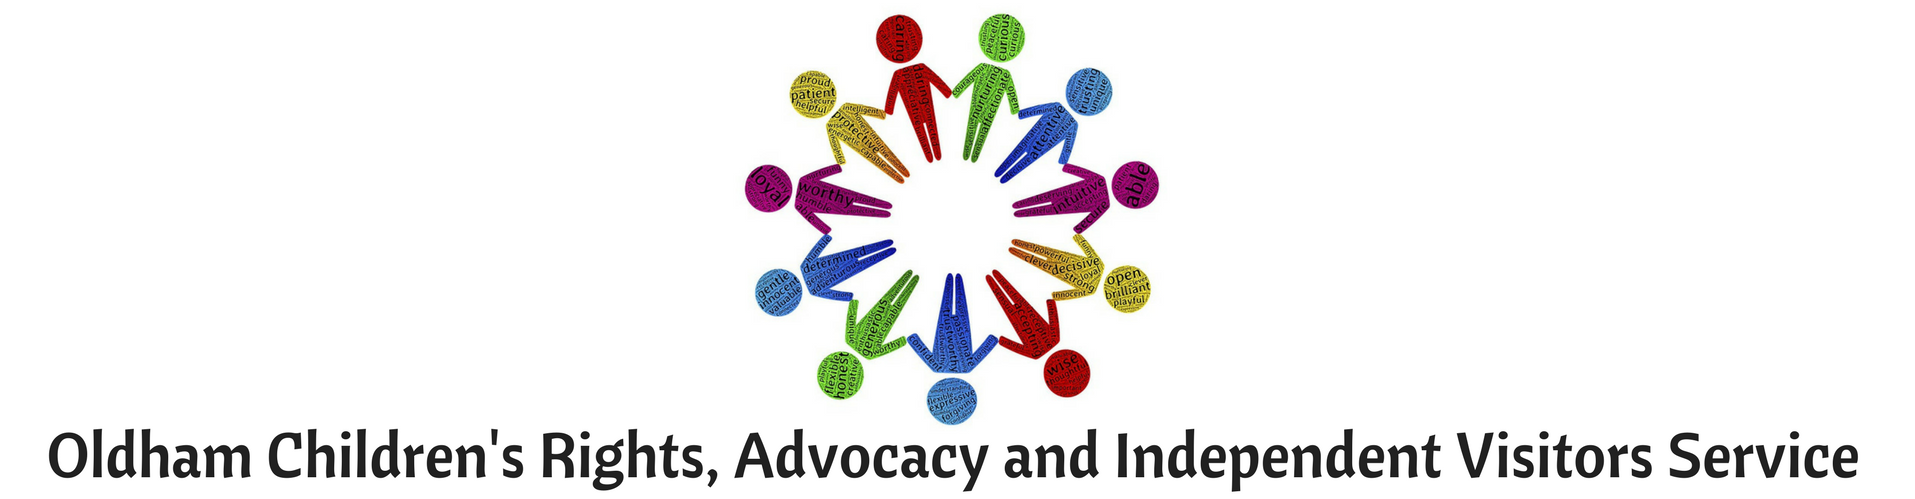 Childrens Rights Advocacy and Independent Visitor Service